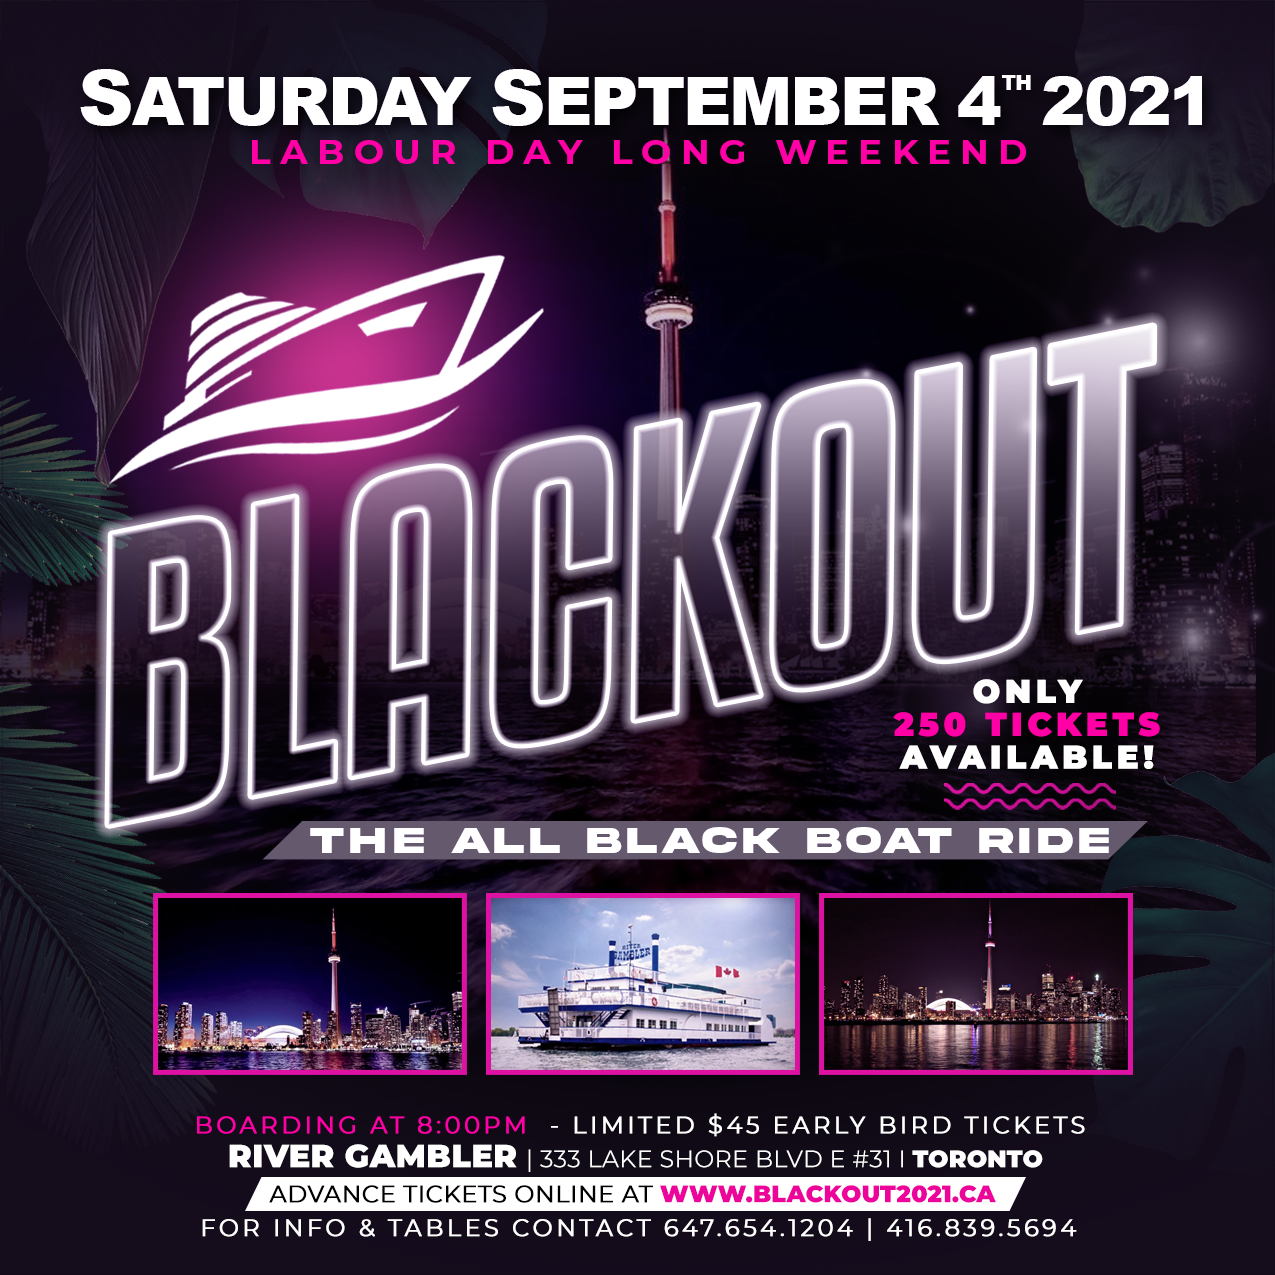 BLACKOUT - THE ALL BLACK BOAT RIDE